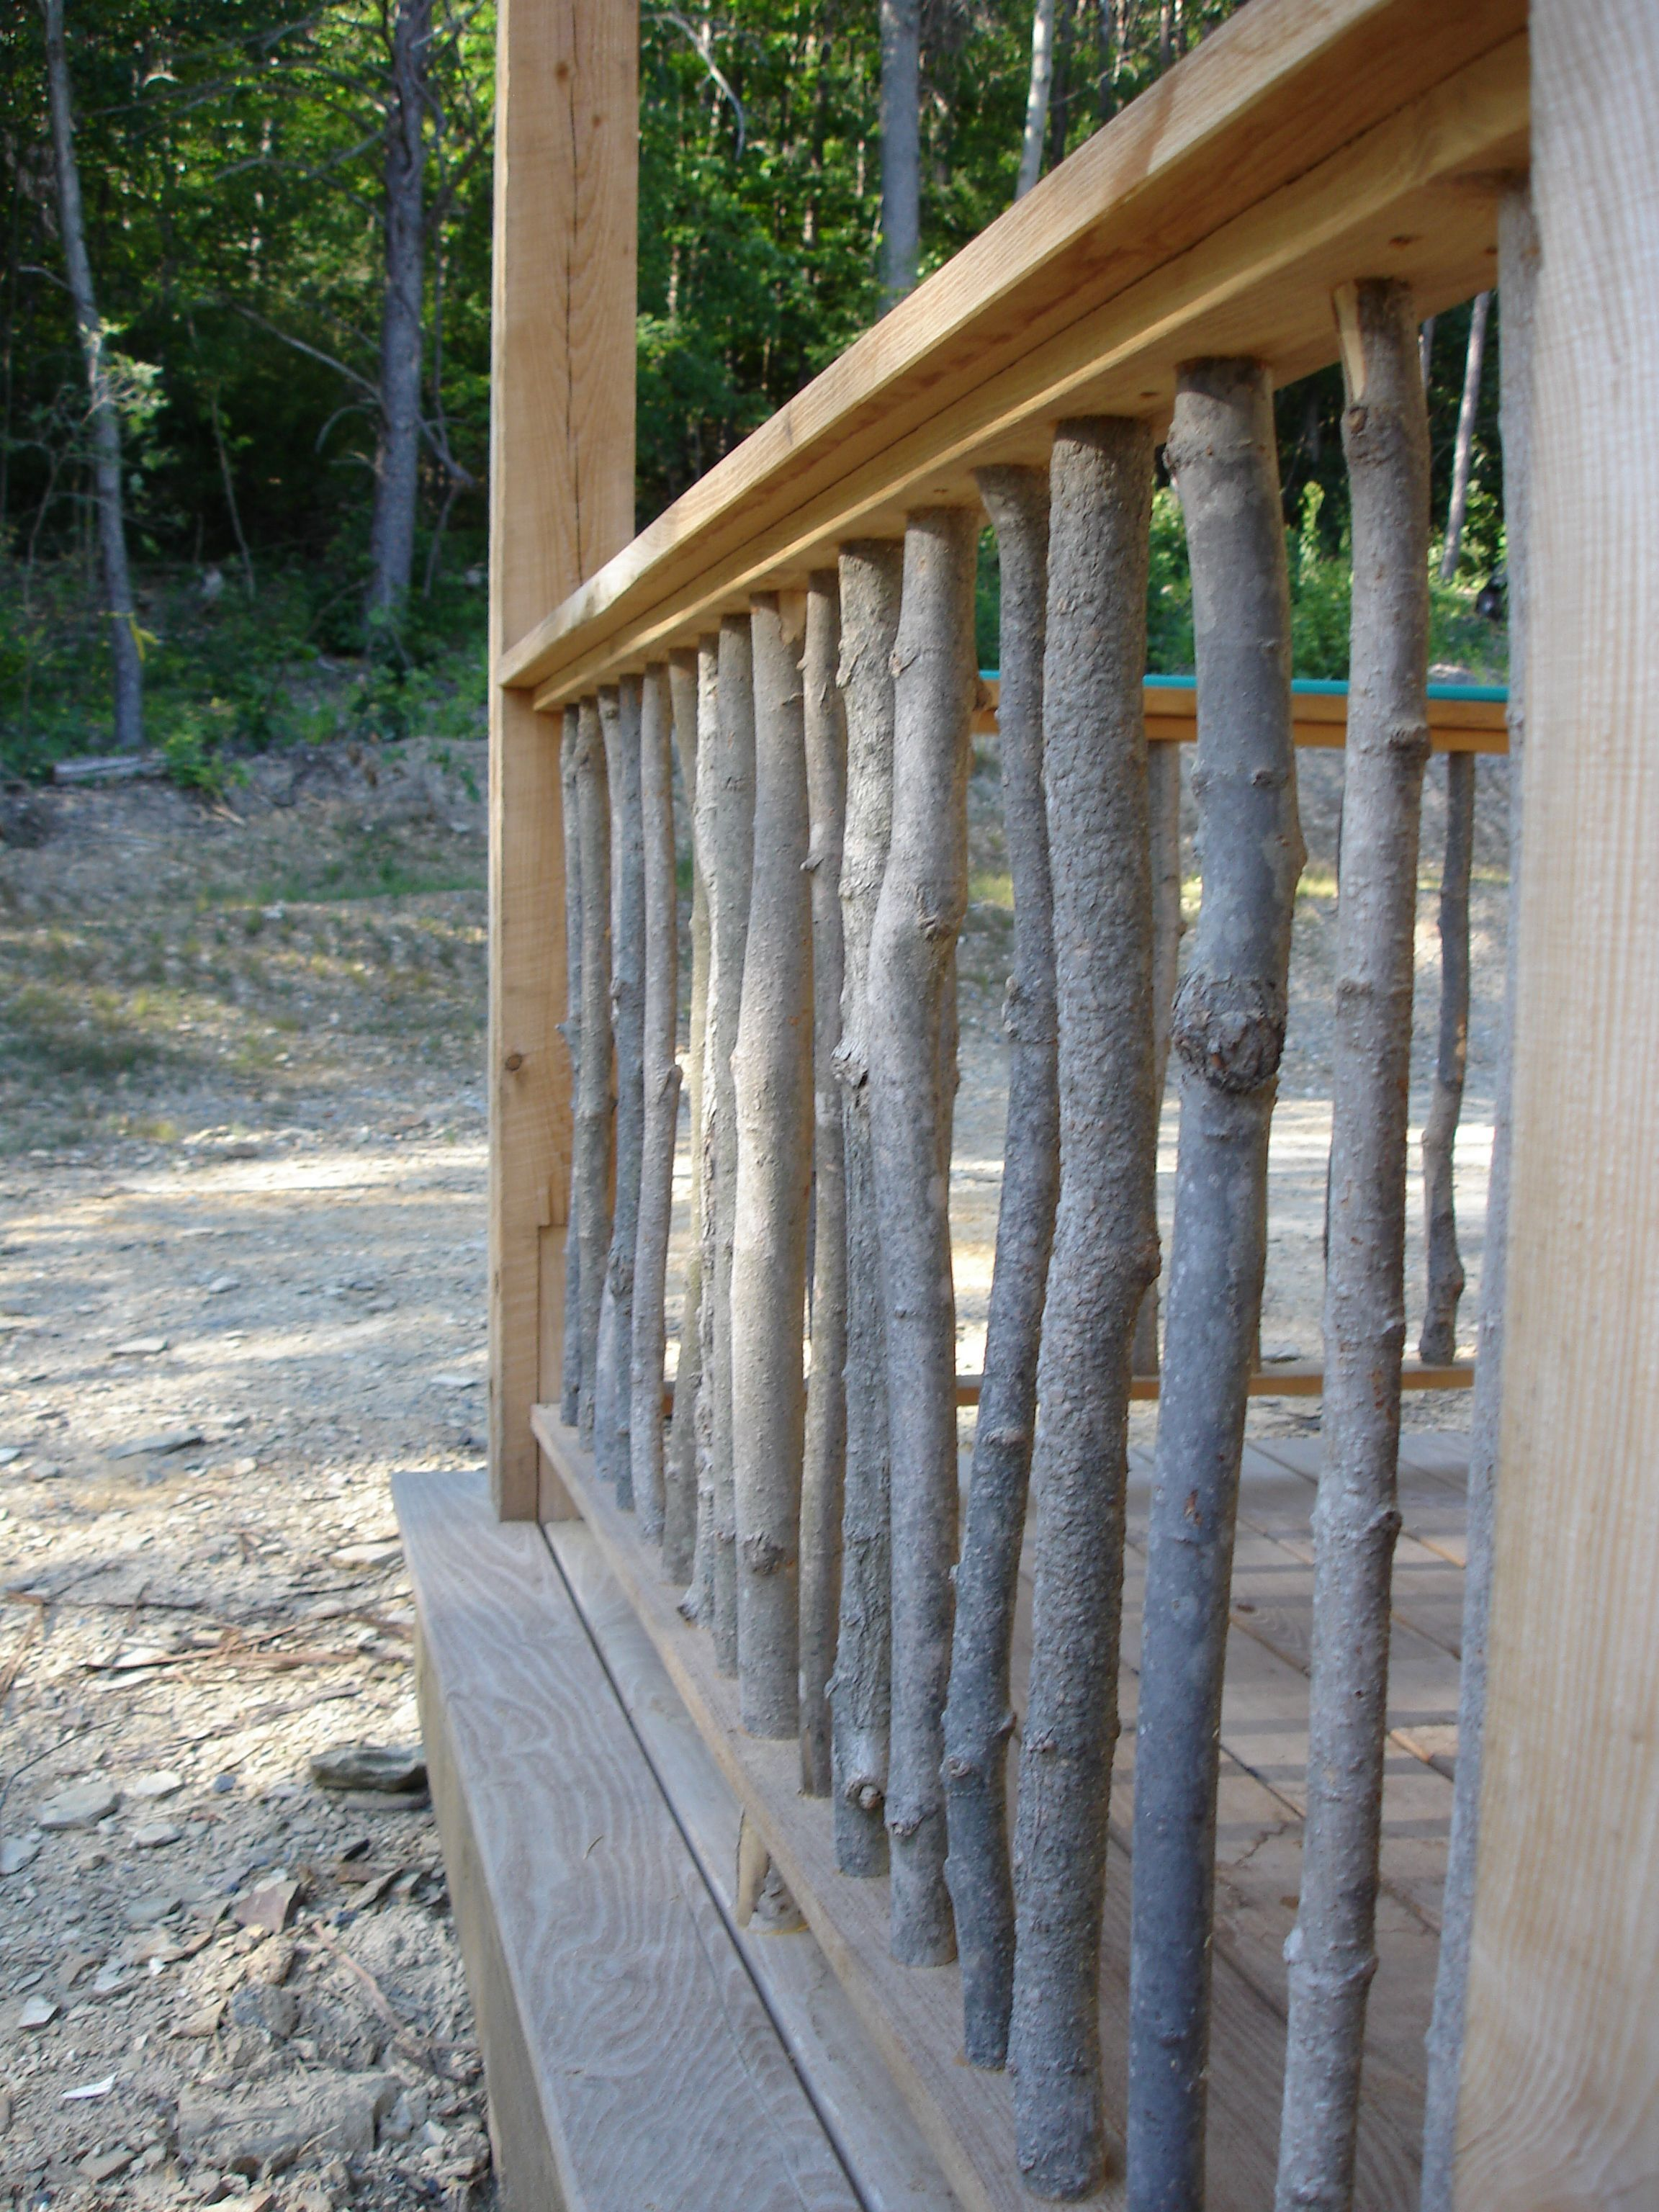 outdoor railing designs on 41 rustic deck path railings ideas rustic deck rustic deck railings 41 rustic deck path railings ideas